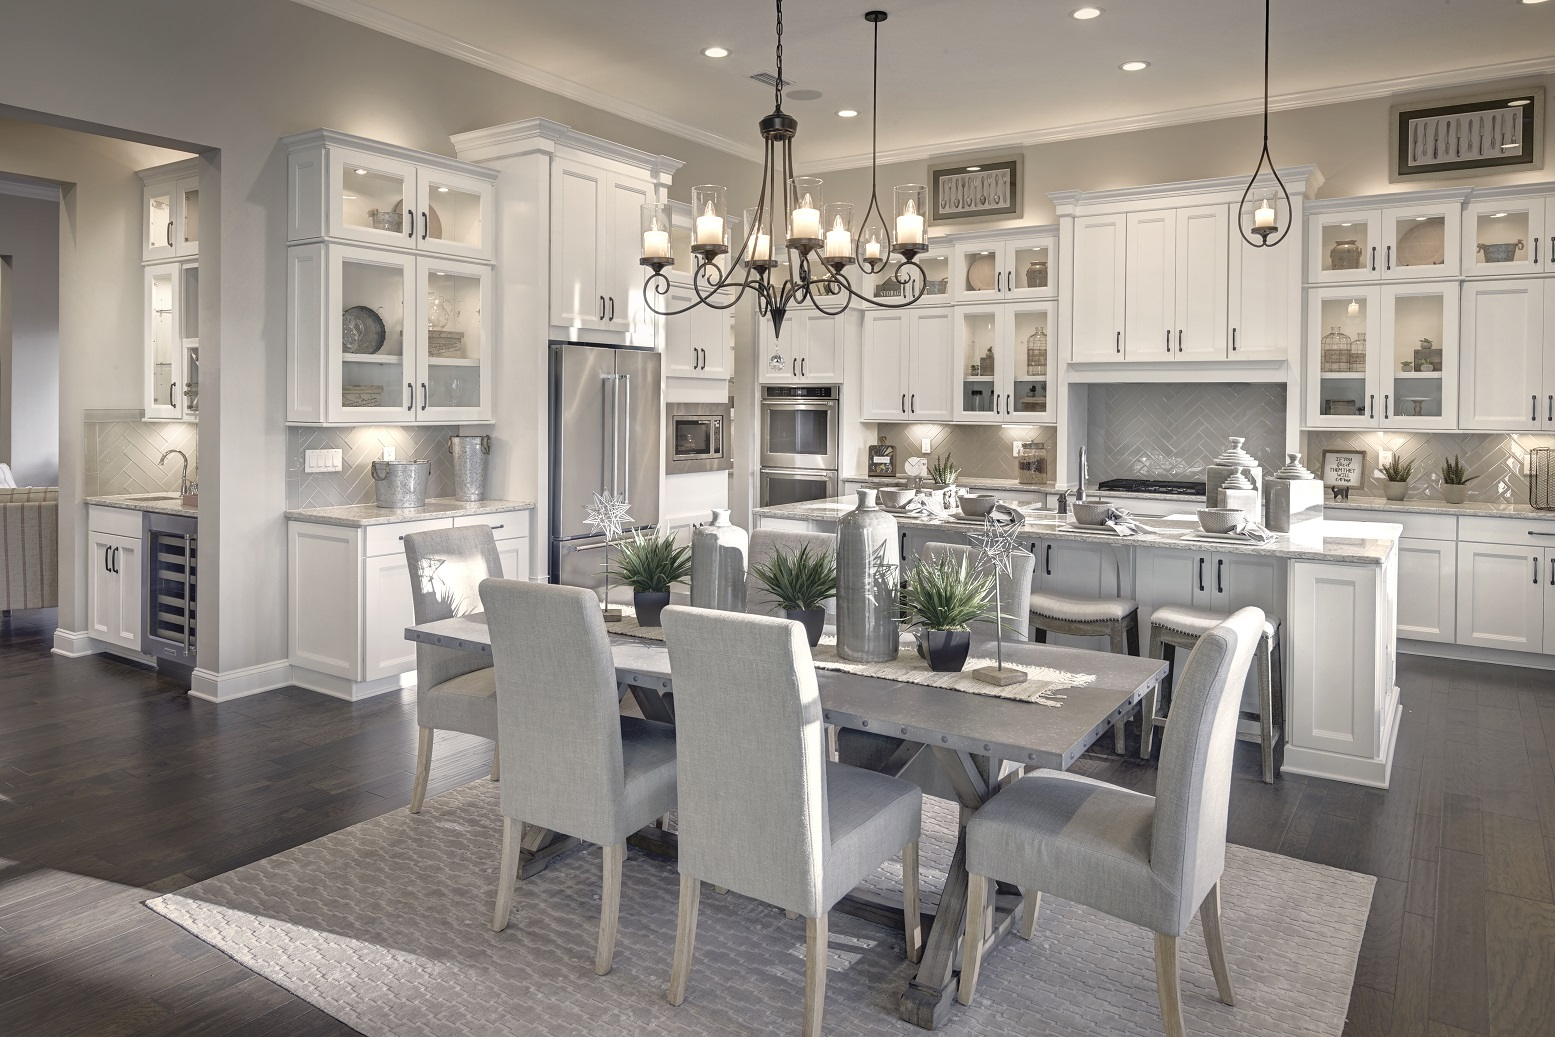 Mattamy Homes RiverTown Has Opened Six New Decorated Model Homes Featuring  New Open And Bright Floorplans.